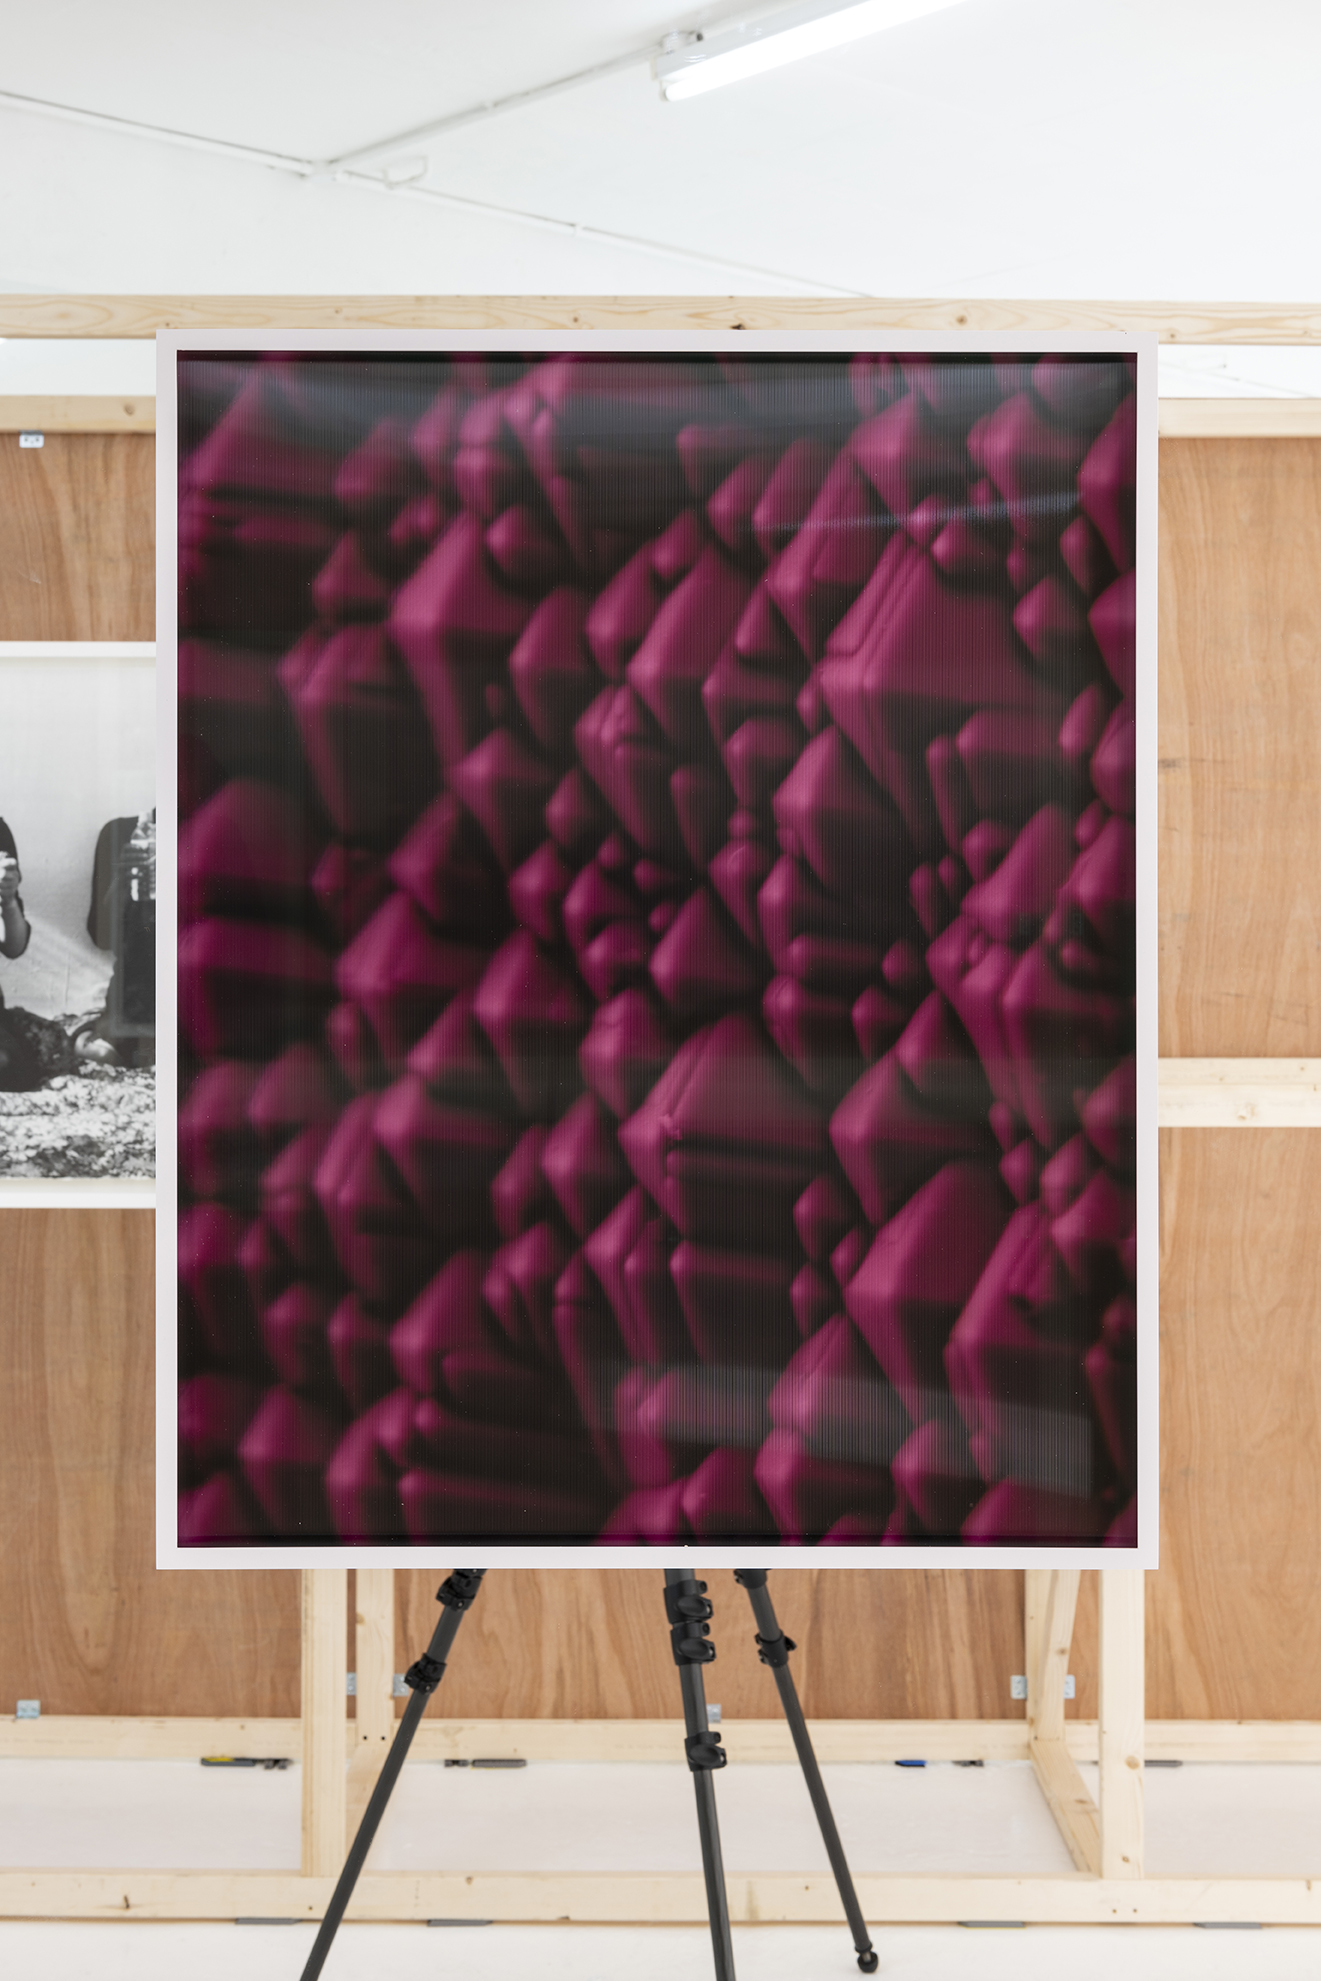 Silicon Valleys x2500 (false colour pink).  Hung on mirror as part of  Light, Observed.